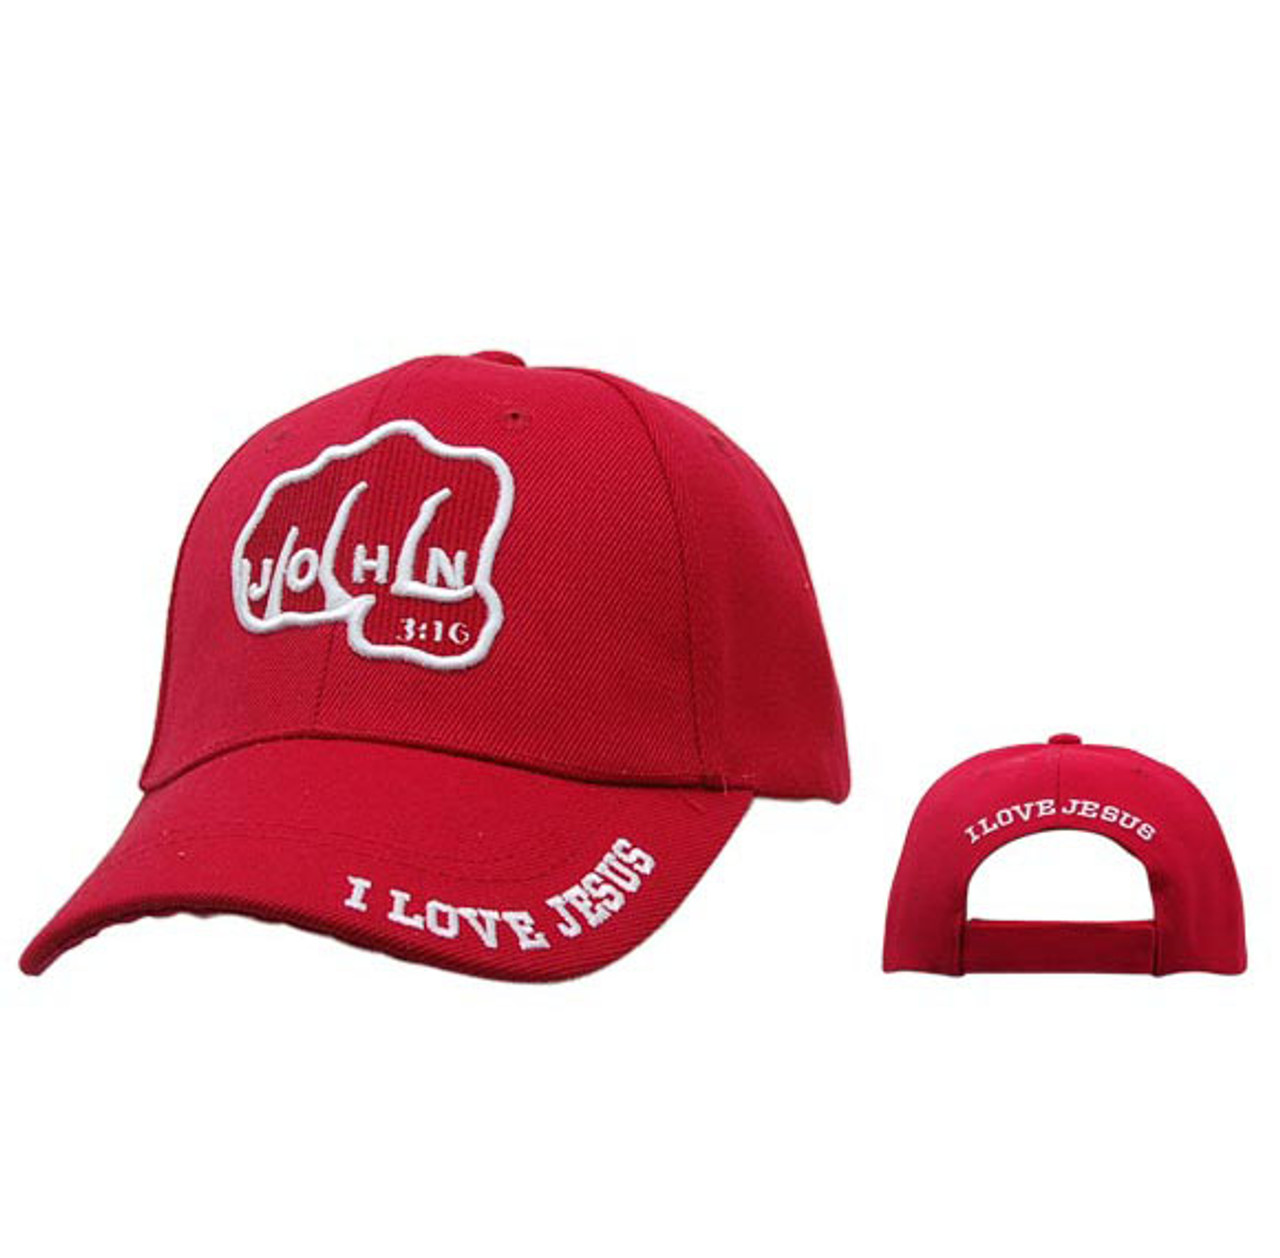 Red Christian Caps Wholesale